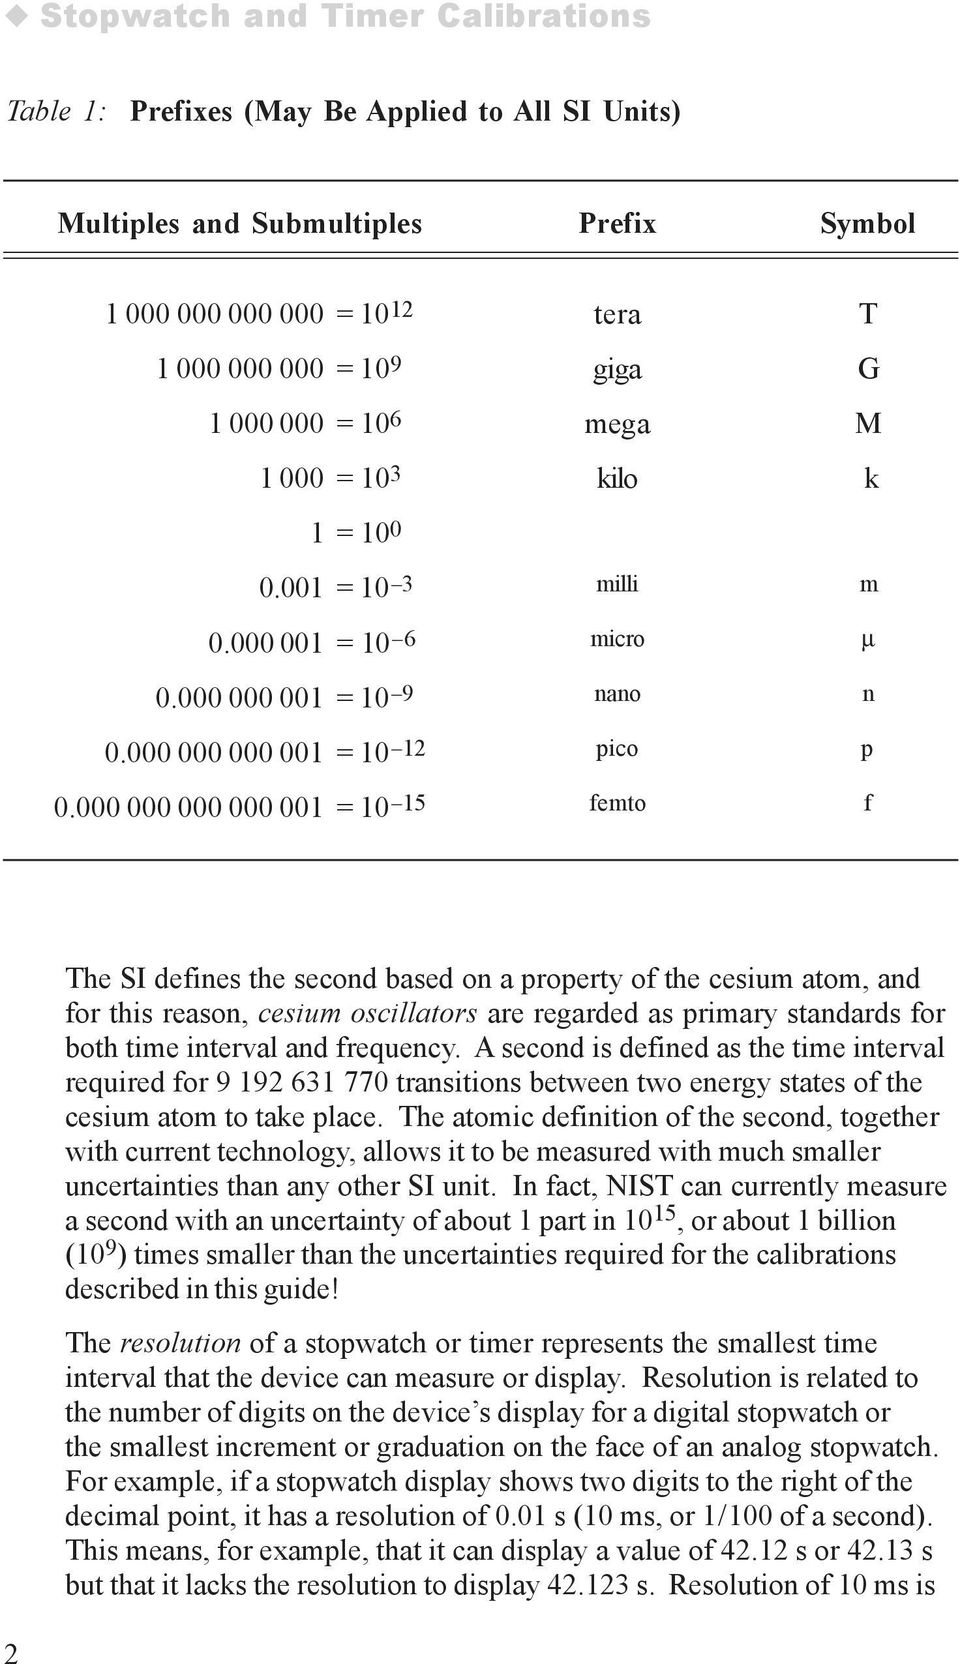 000 000 000 000 001 = 10 15 femto f 2 The SI defines the second based on a property of the cesium atom, and for this reason, cesium oscillators are regarded as primary standards for both time